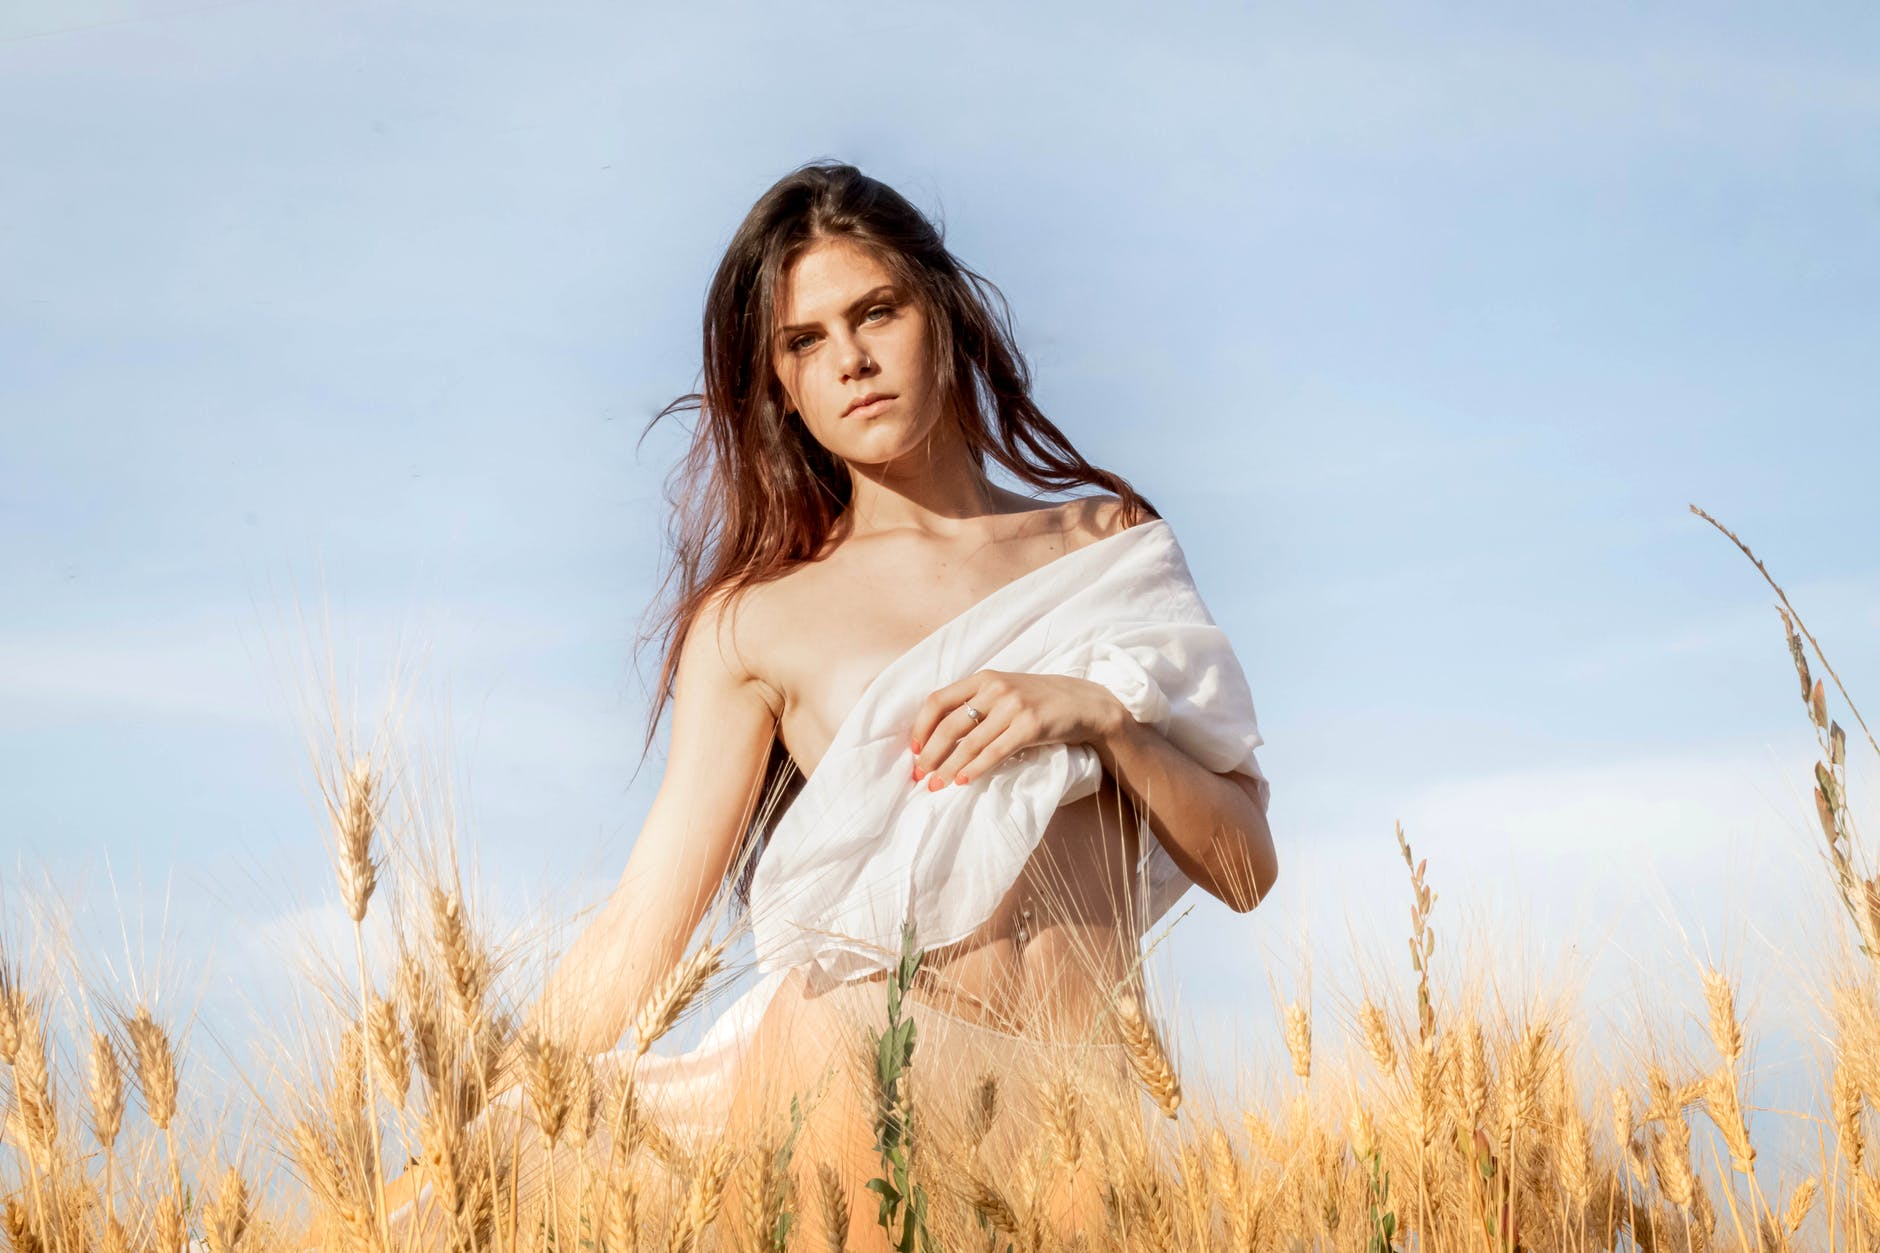 young woman standing in field with cloth on breast